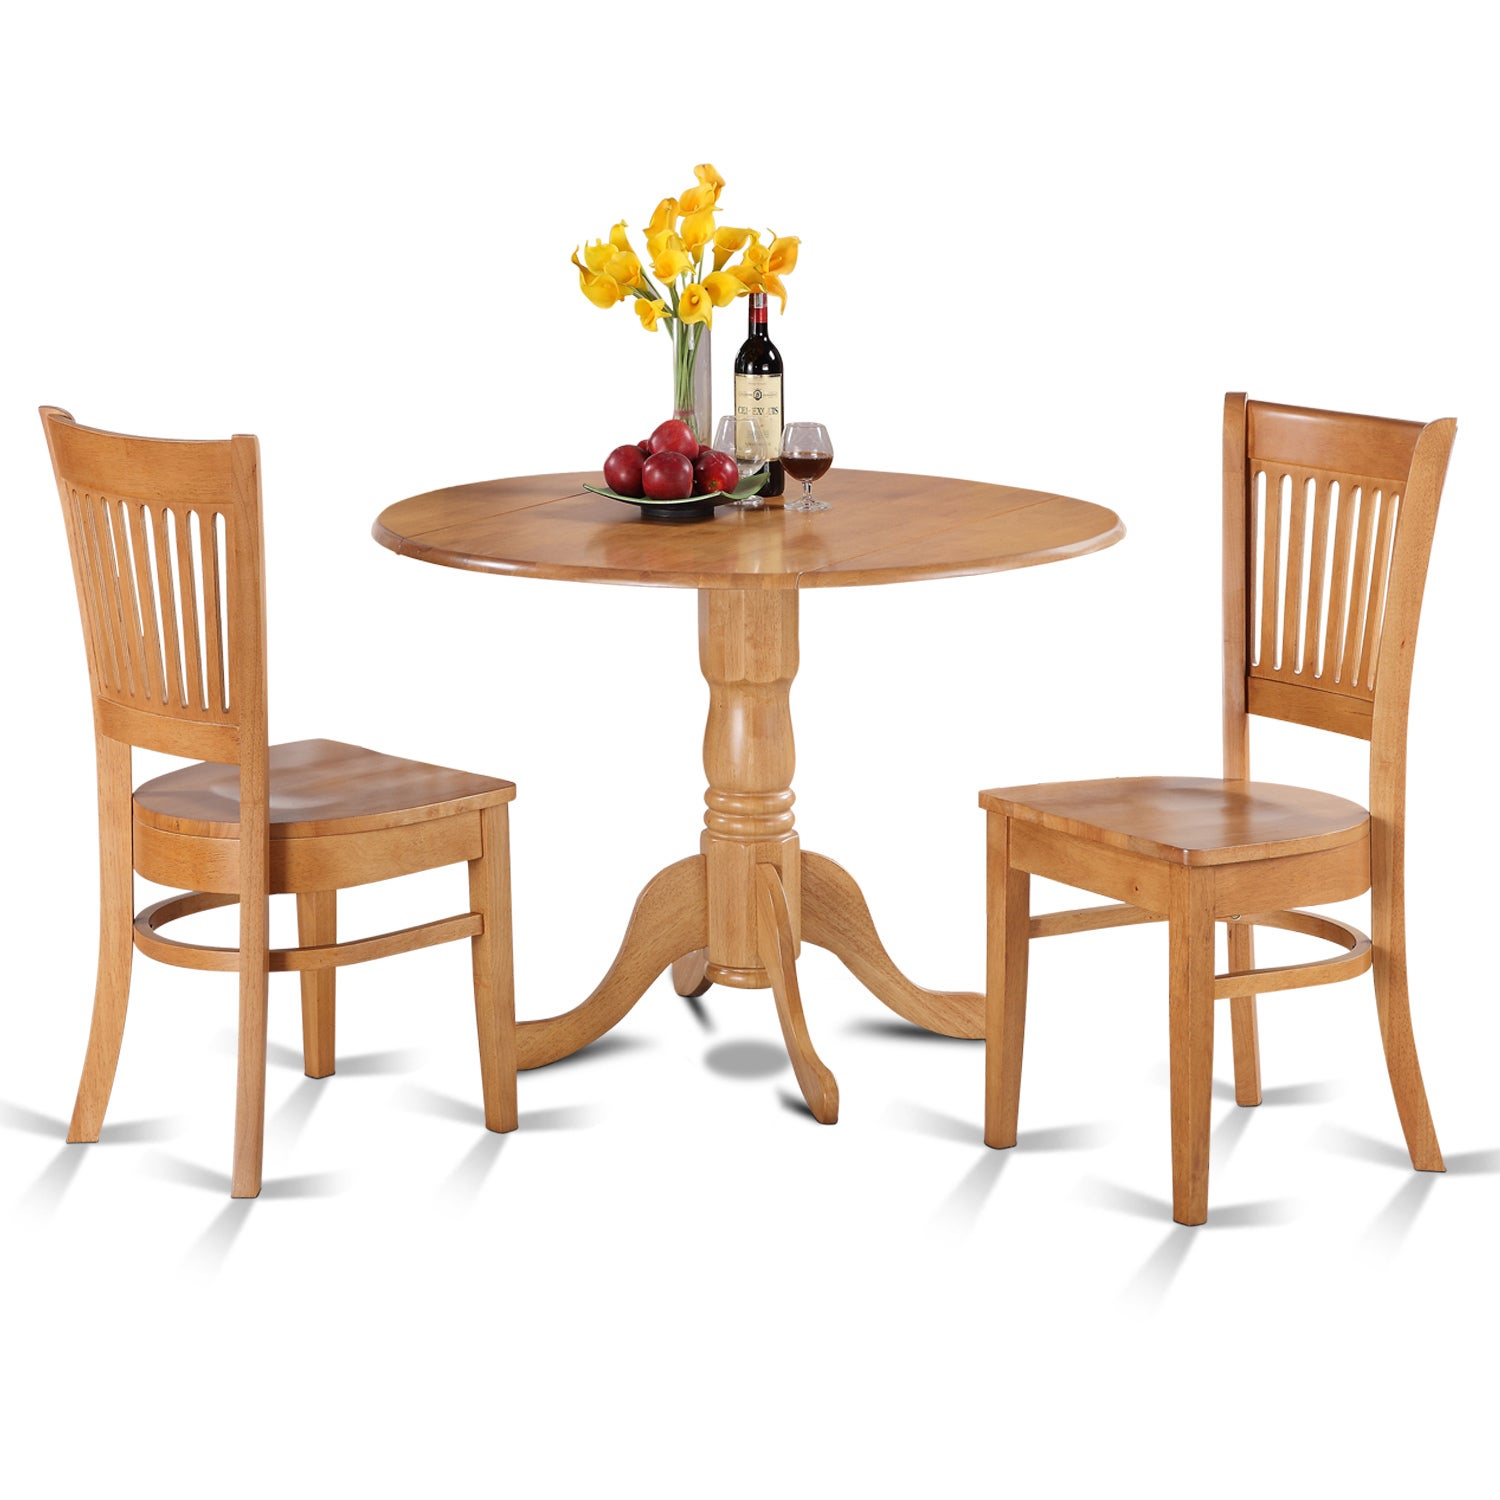 Oak Kitchen Table and 2 Slat Back Chairs 3-piece Dining S...